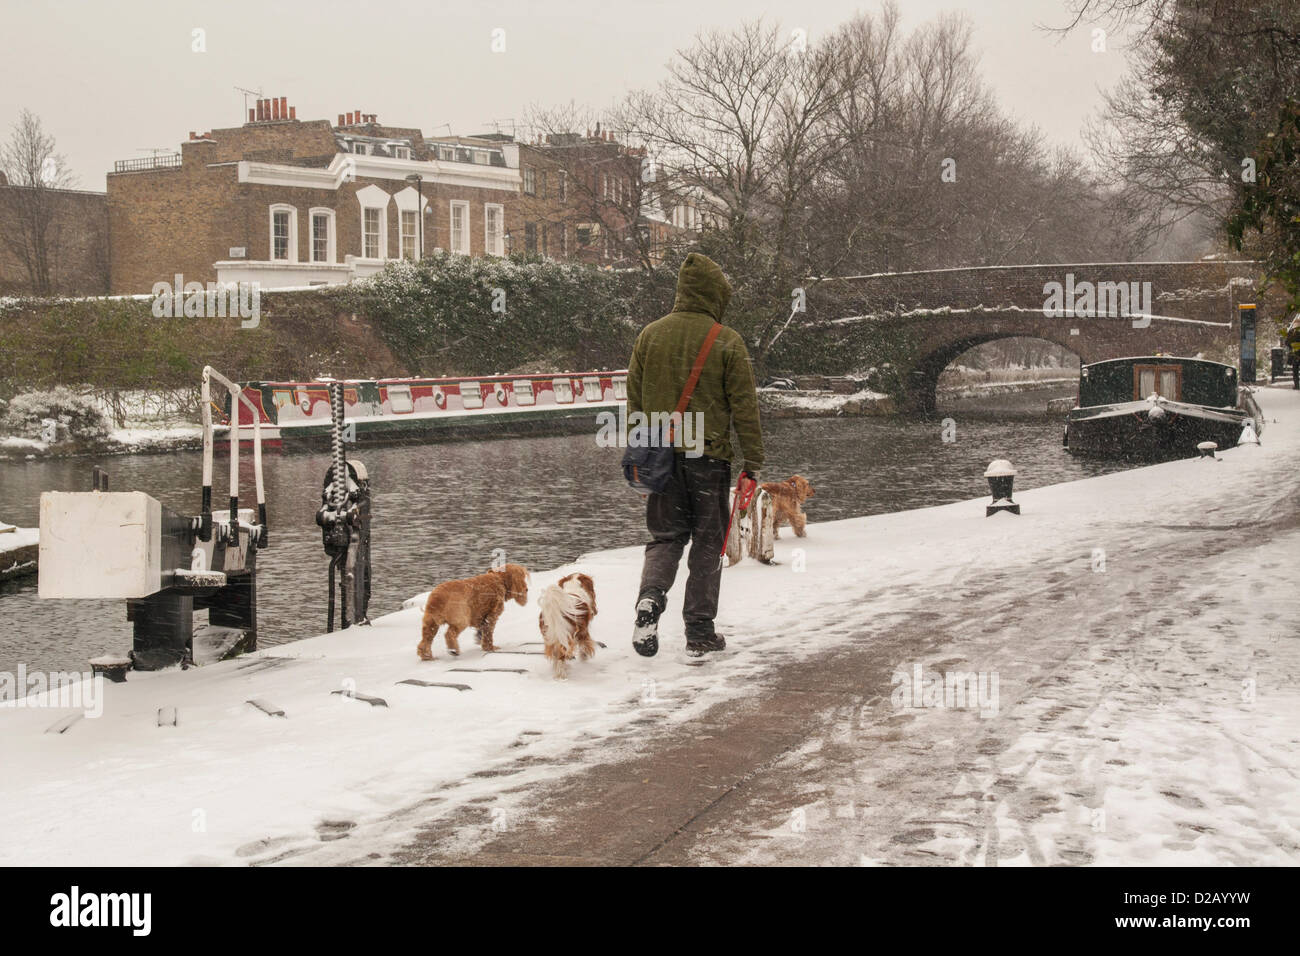 London, UK. 18th January 2013. Regent's Canal, Central London, as snow falls across the South East - Stock Image